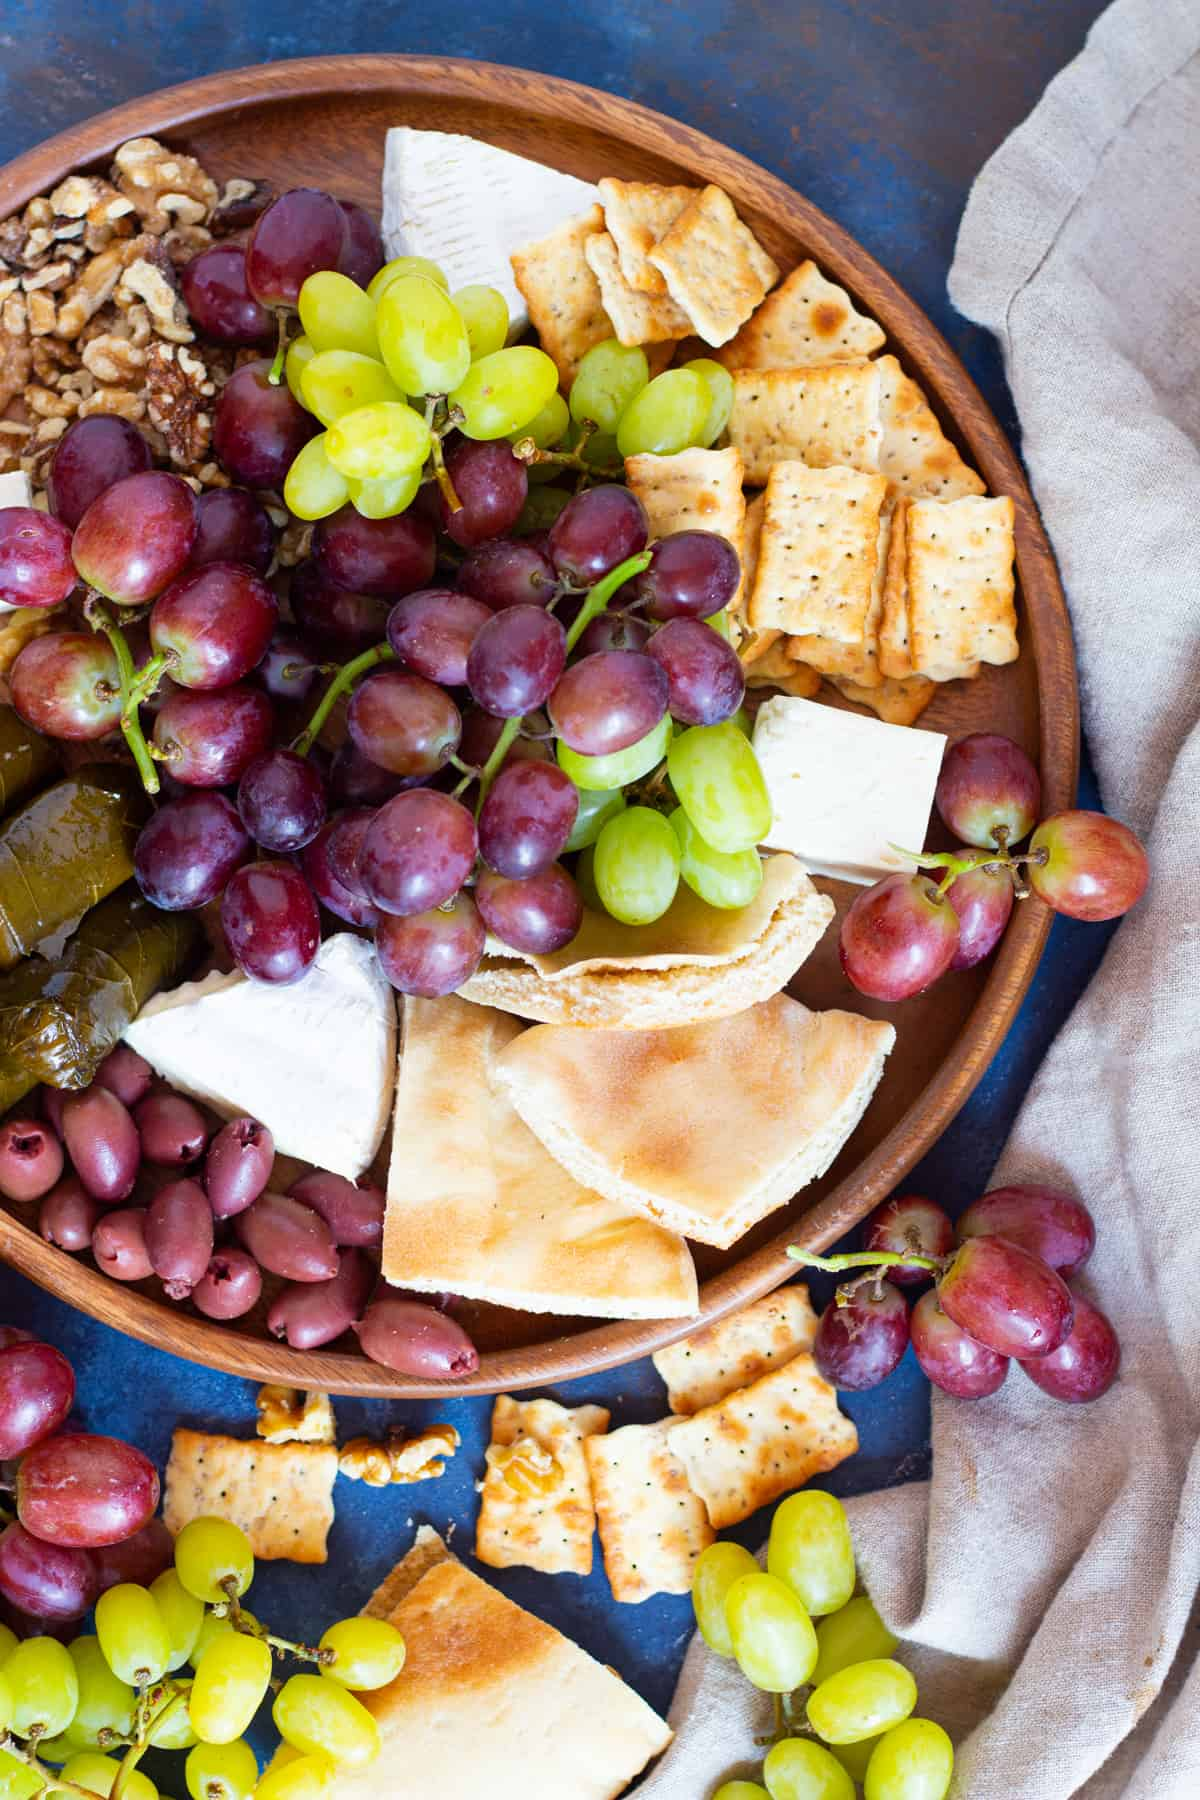 Add pita and crackers to the appetizer board.